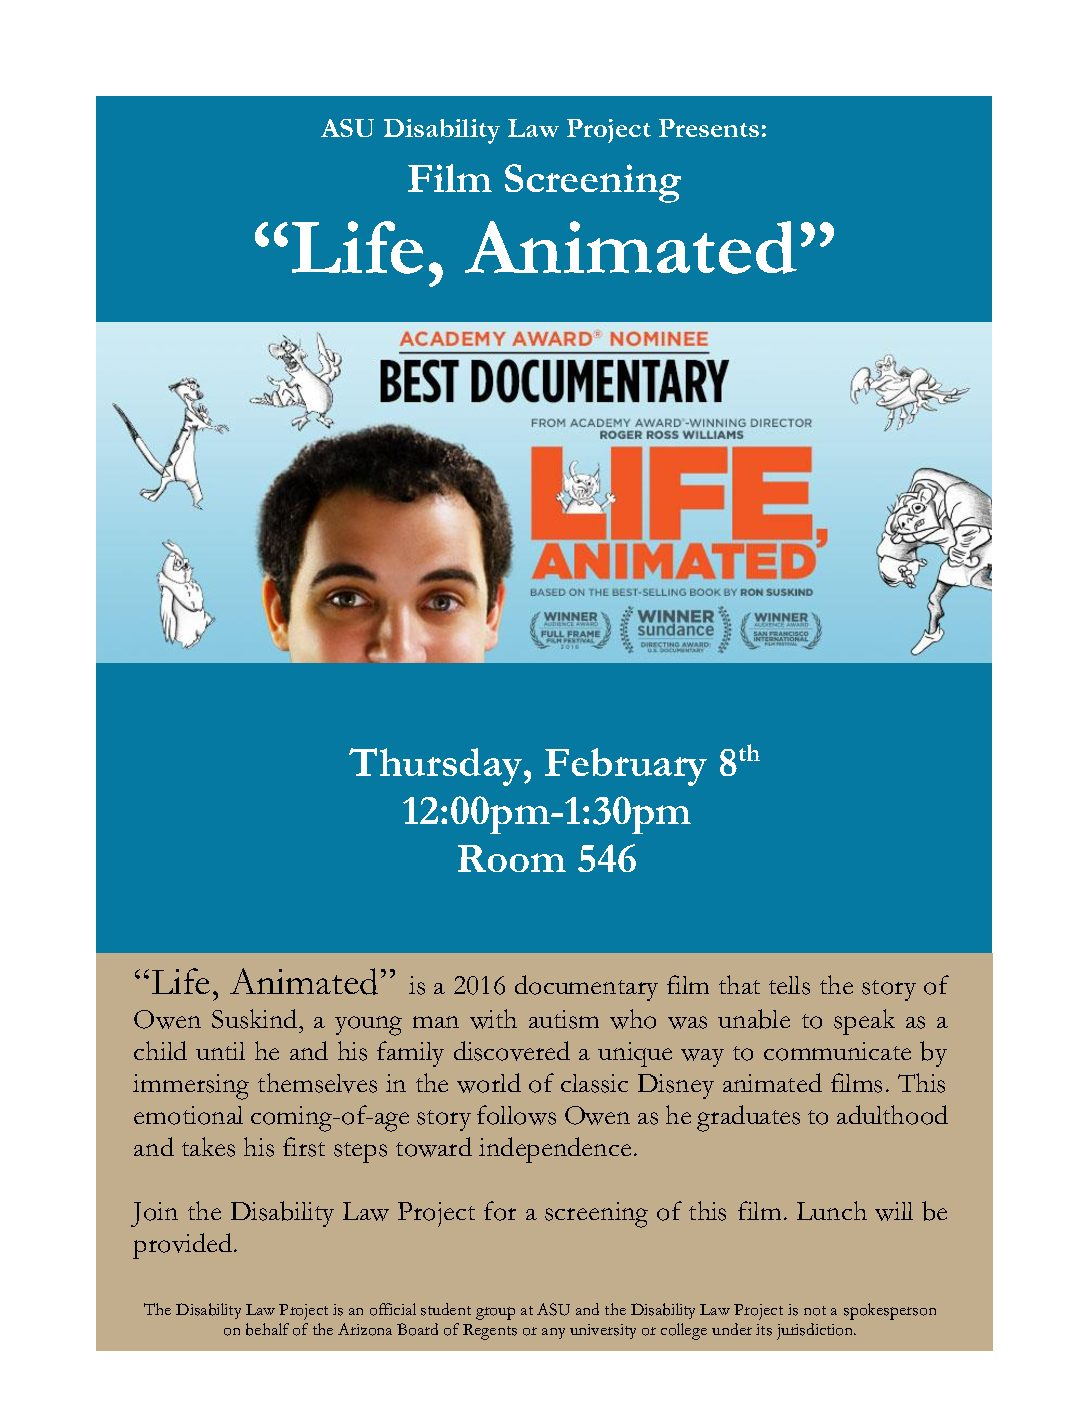 Thursday, 2/8 — Film Screening and Pizza at Lunch, Room 546